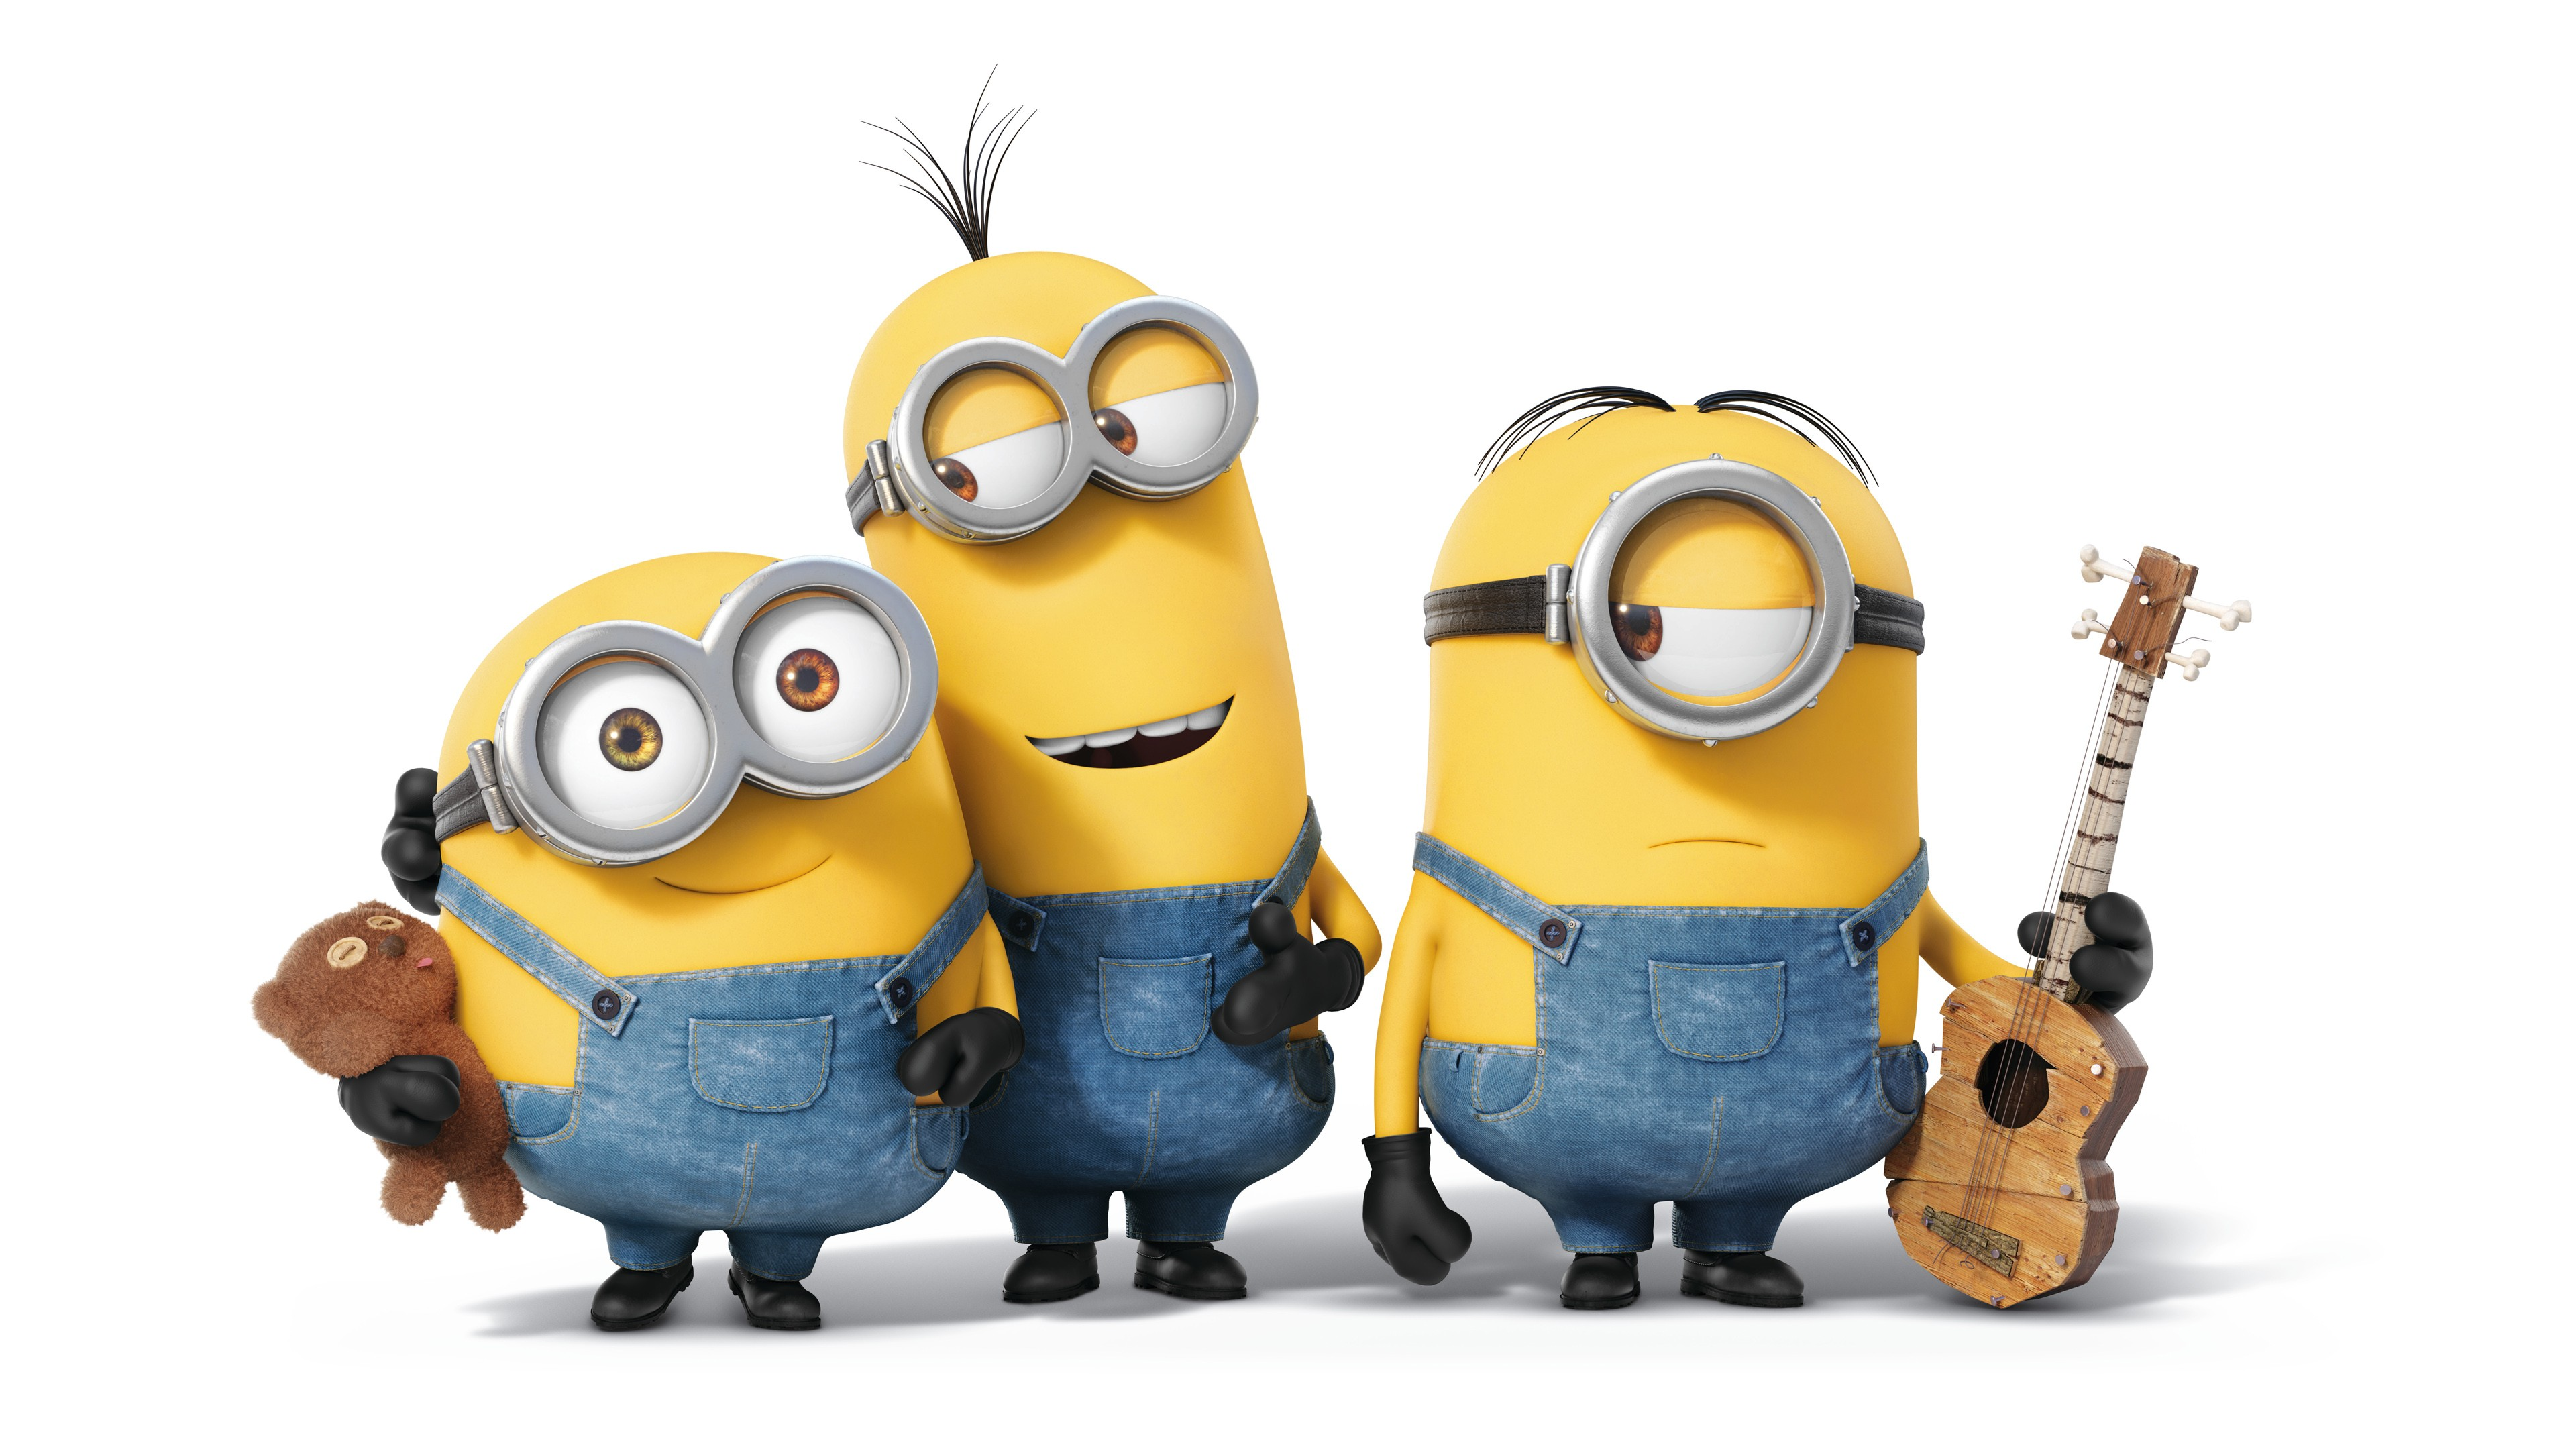 Cute Minions Wallpaper Hd For Android Minions Comedy Movie Wallpapers Hd Wallpapers Id 15541